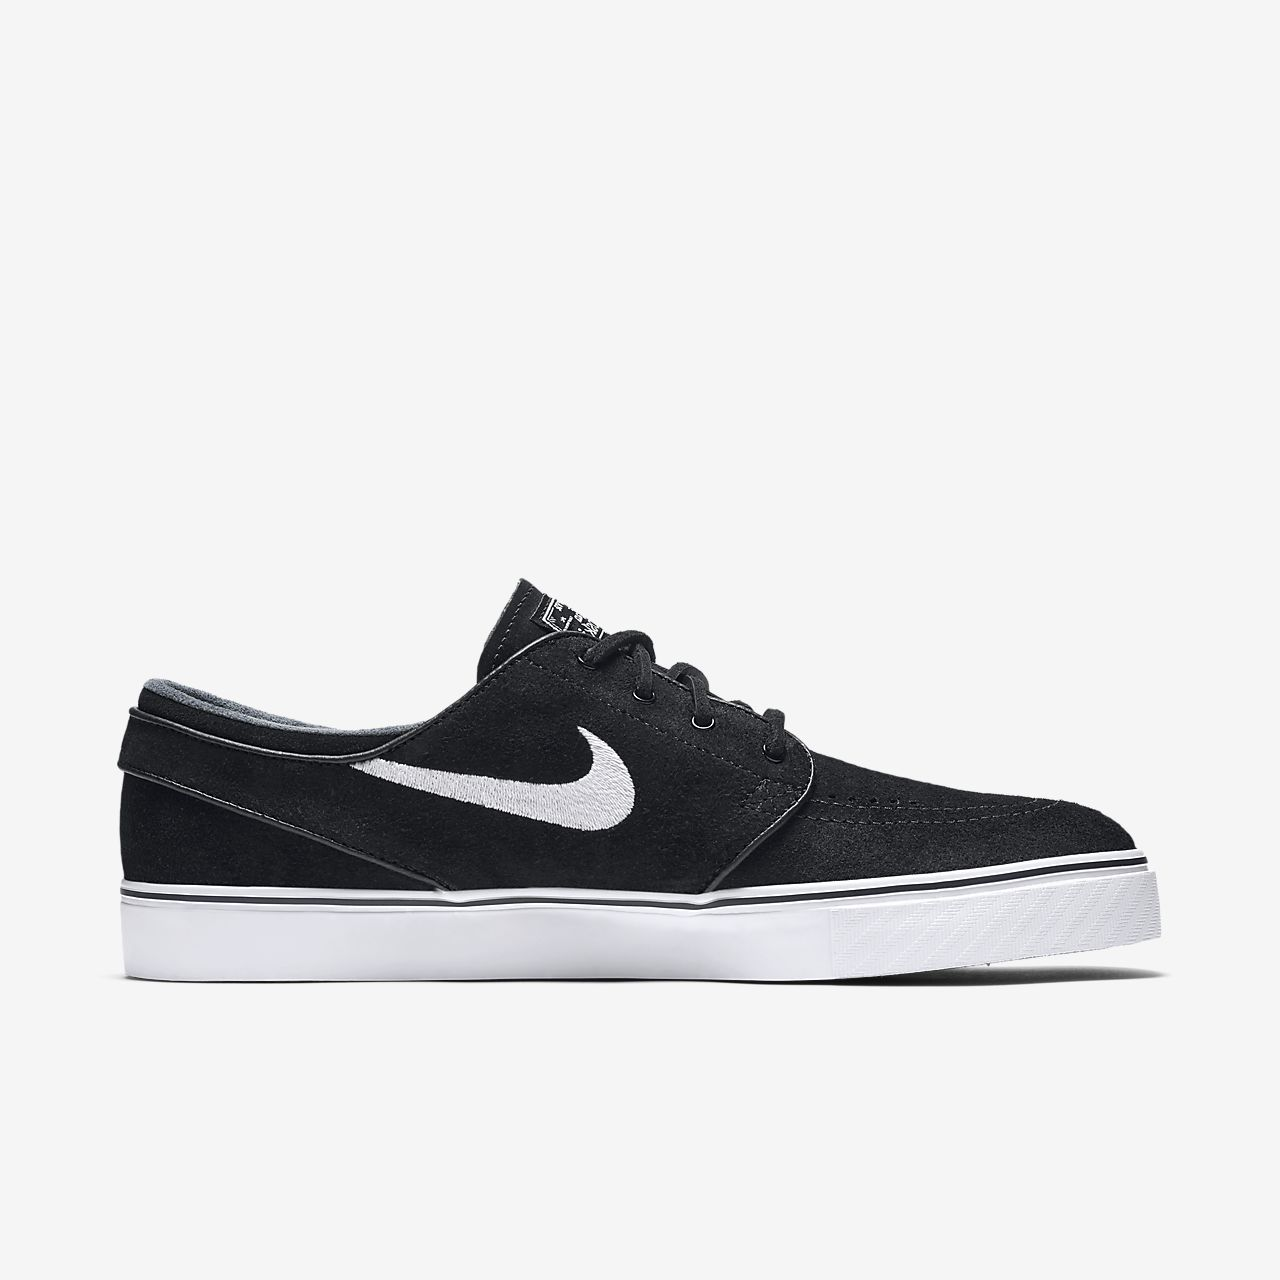 Nike SB Zoom Stefan Janoski OG Men's Skateboarding Shoes Black/Brown/White qD5415R